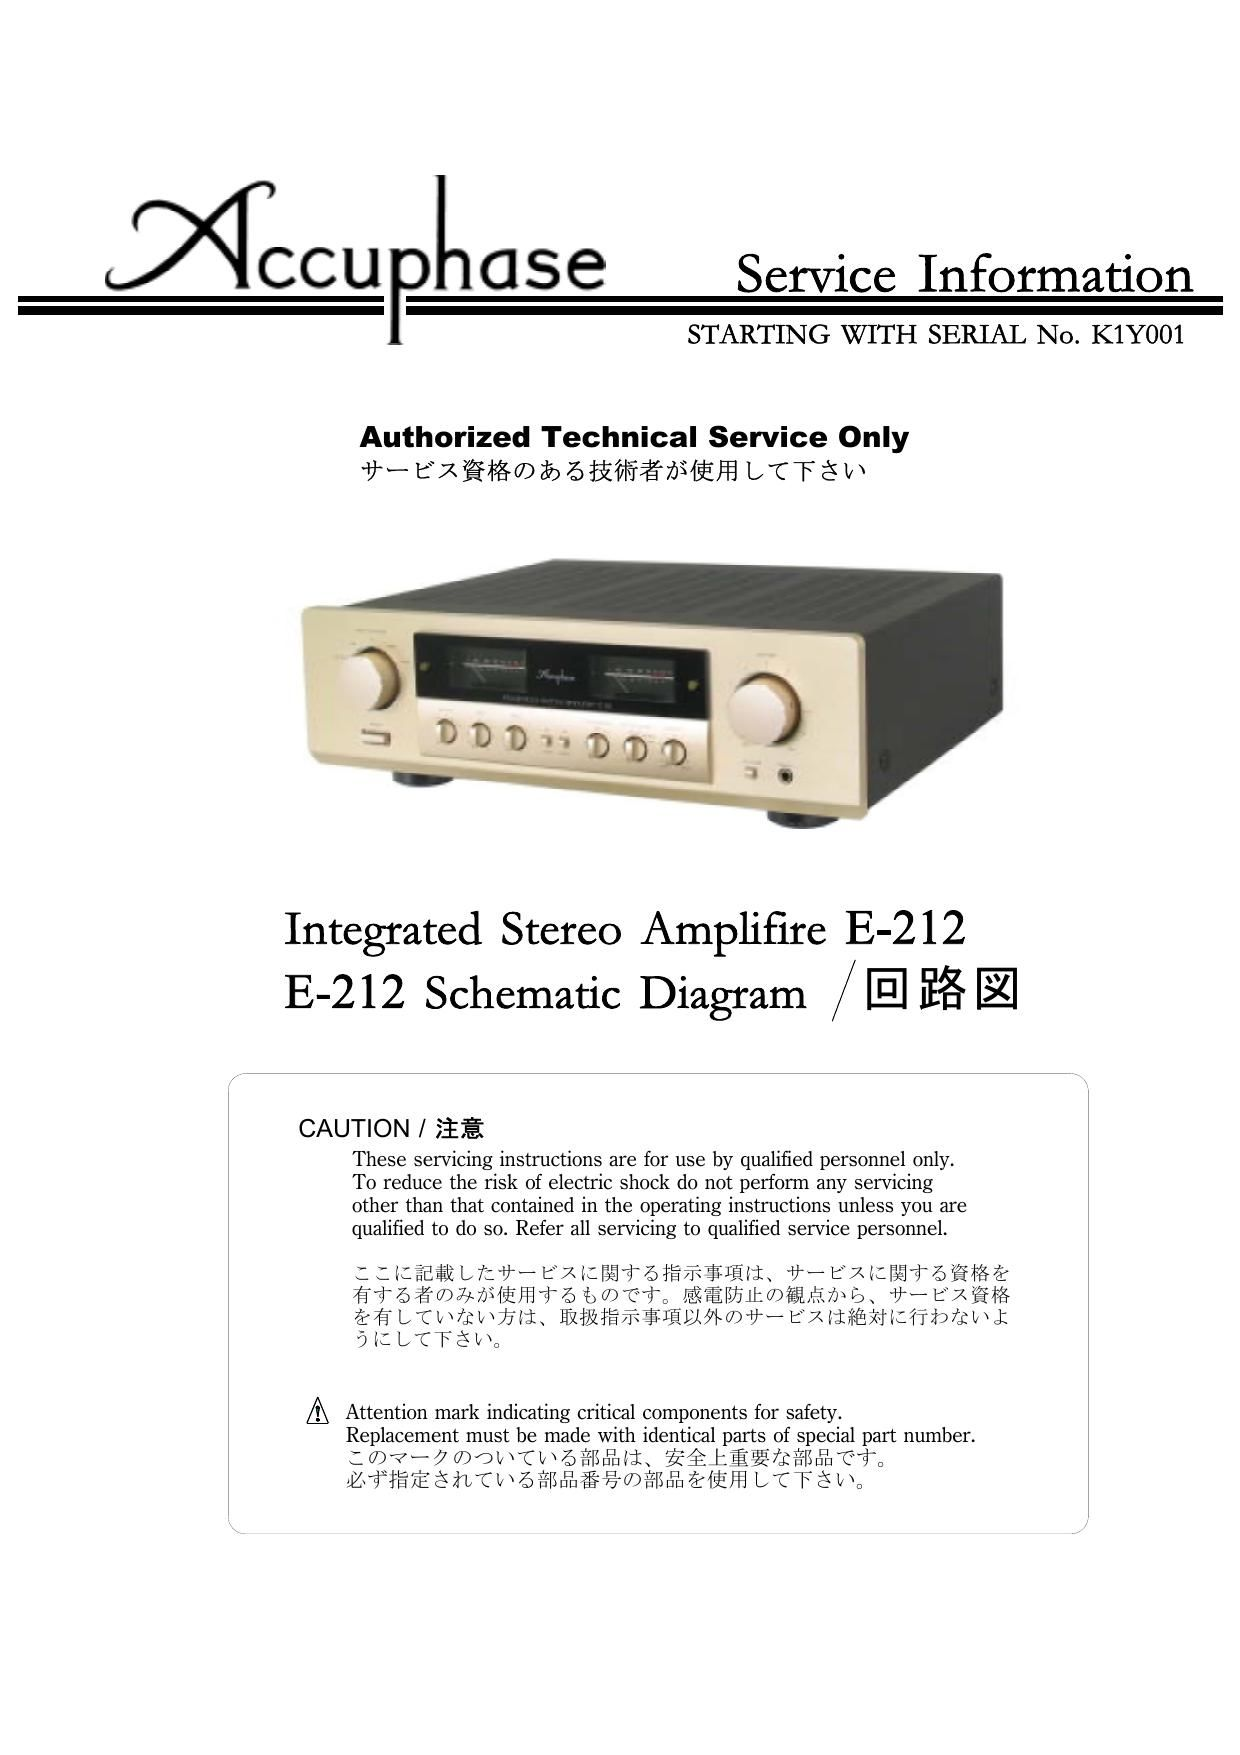 Accuphase E 212 Schematic